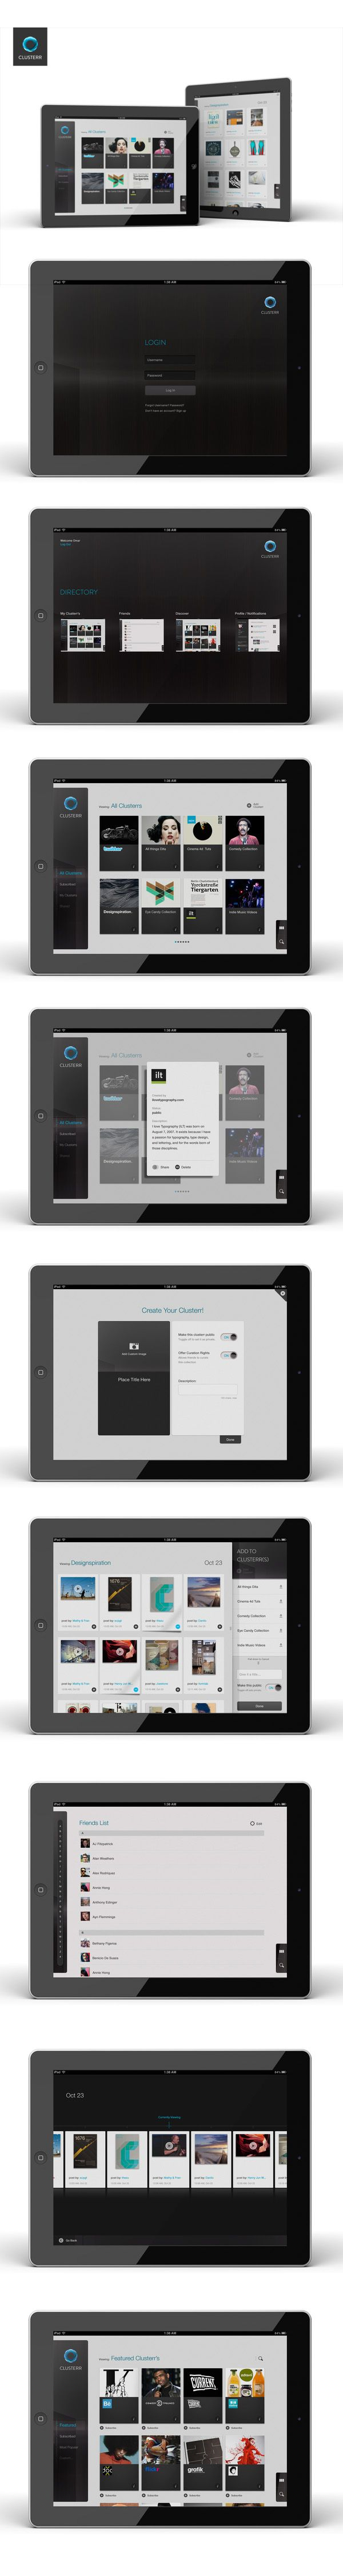 Clusterr iPad App / An iPad App for a visualizer for your twitter timeline and acts as a content curation tool